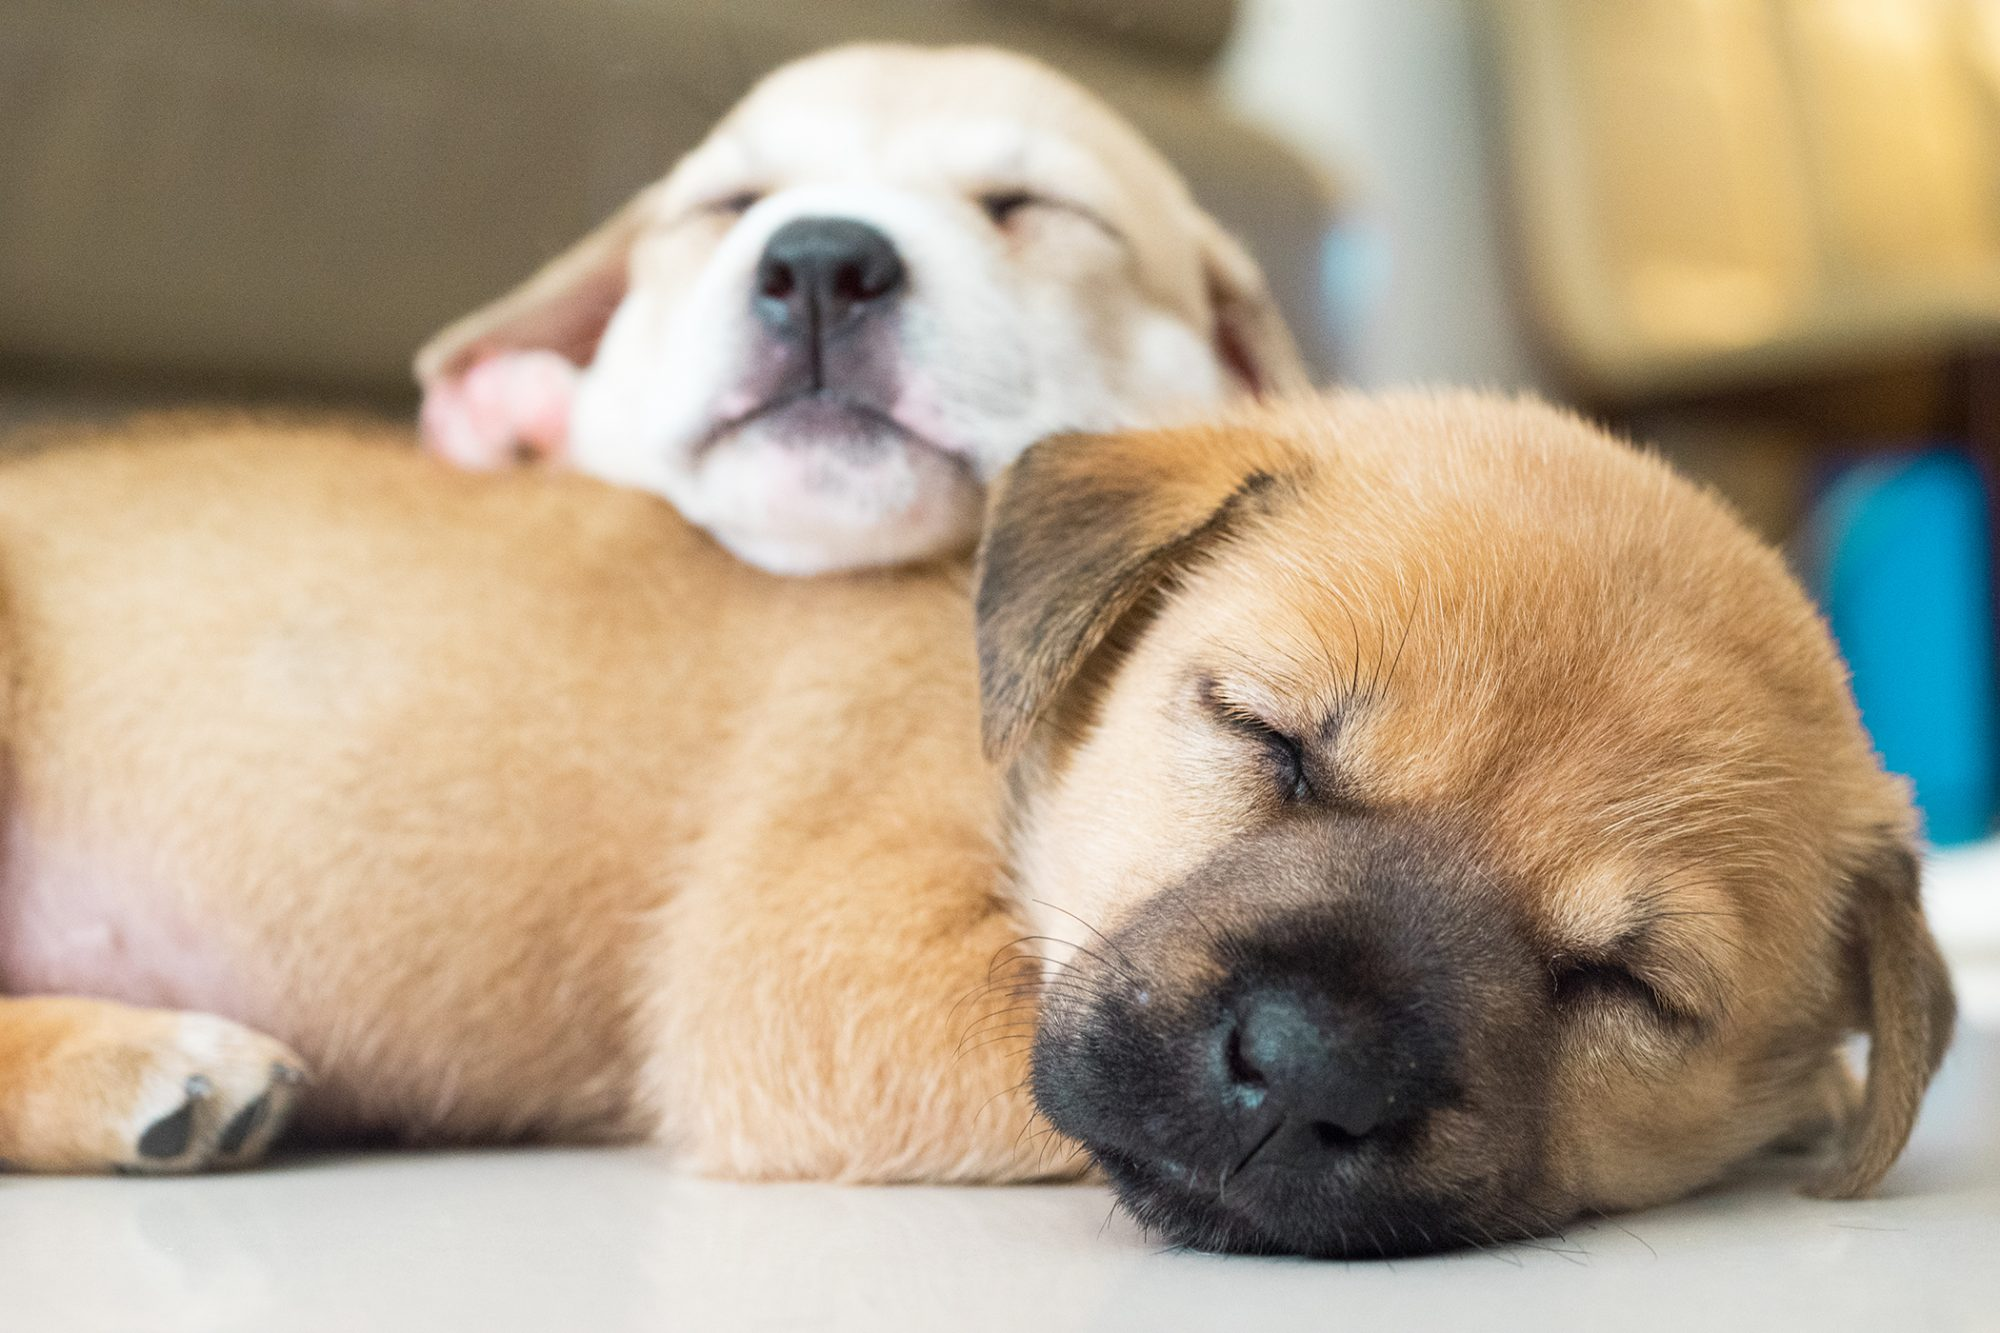 Two puppies take a nap, with one sleeping on top of another